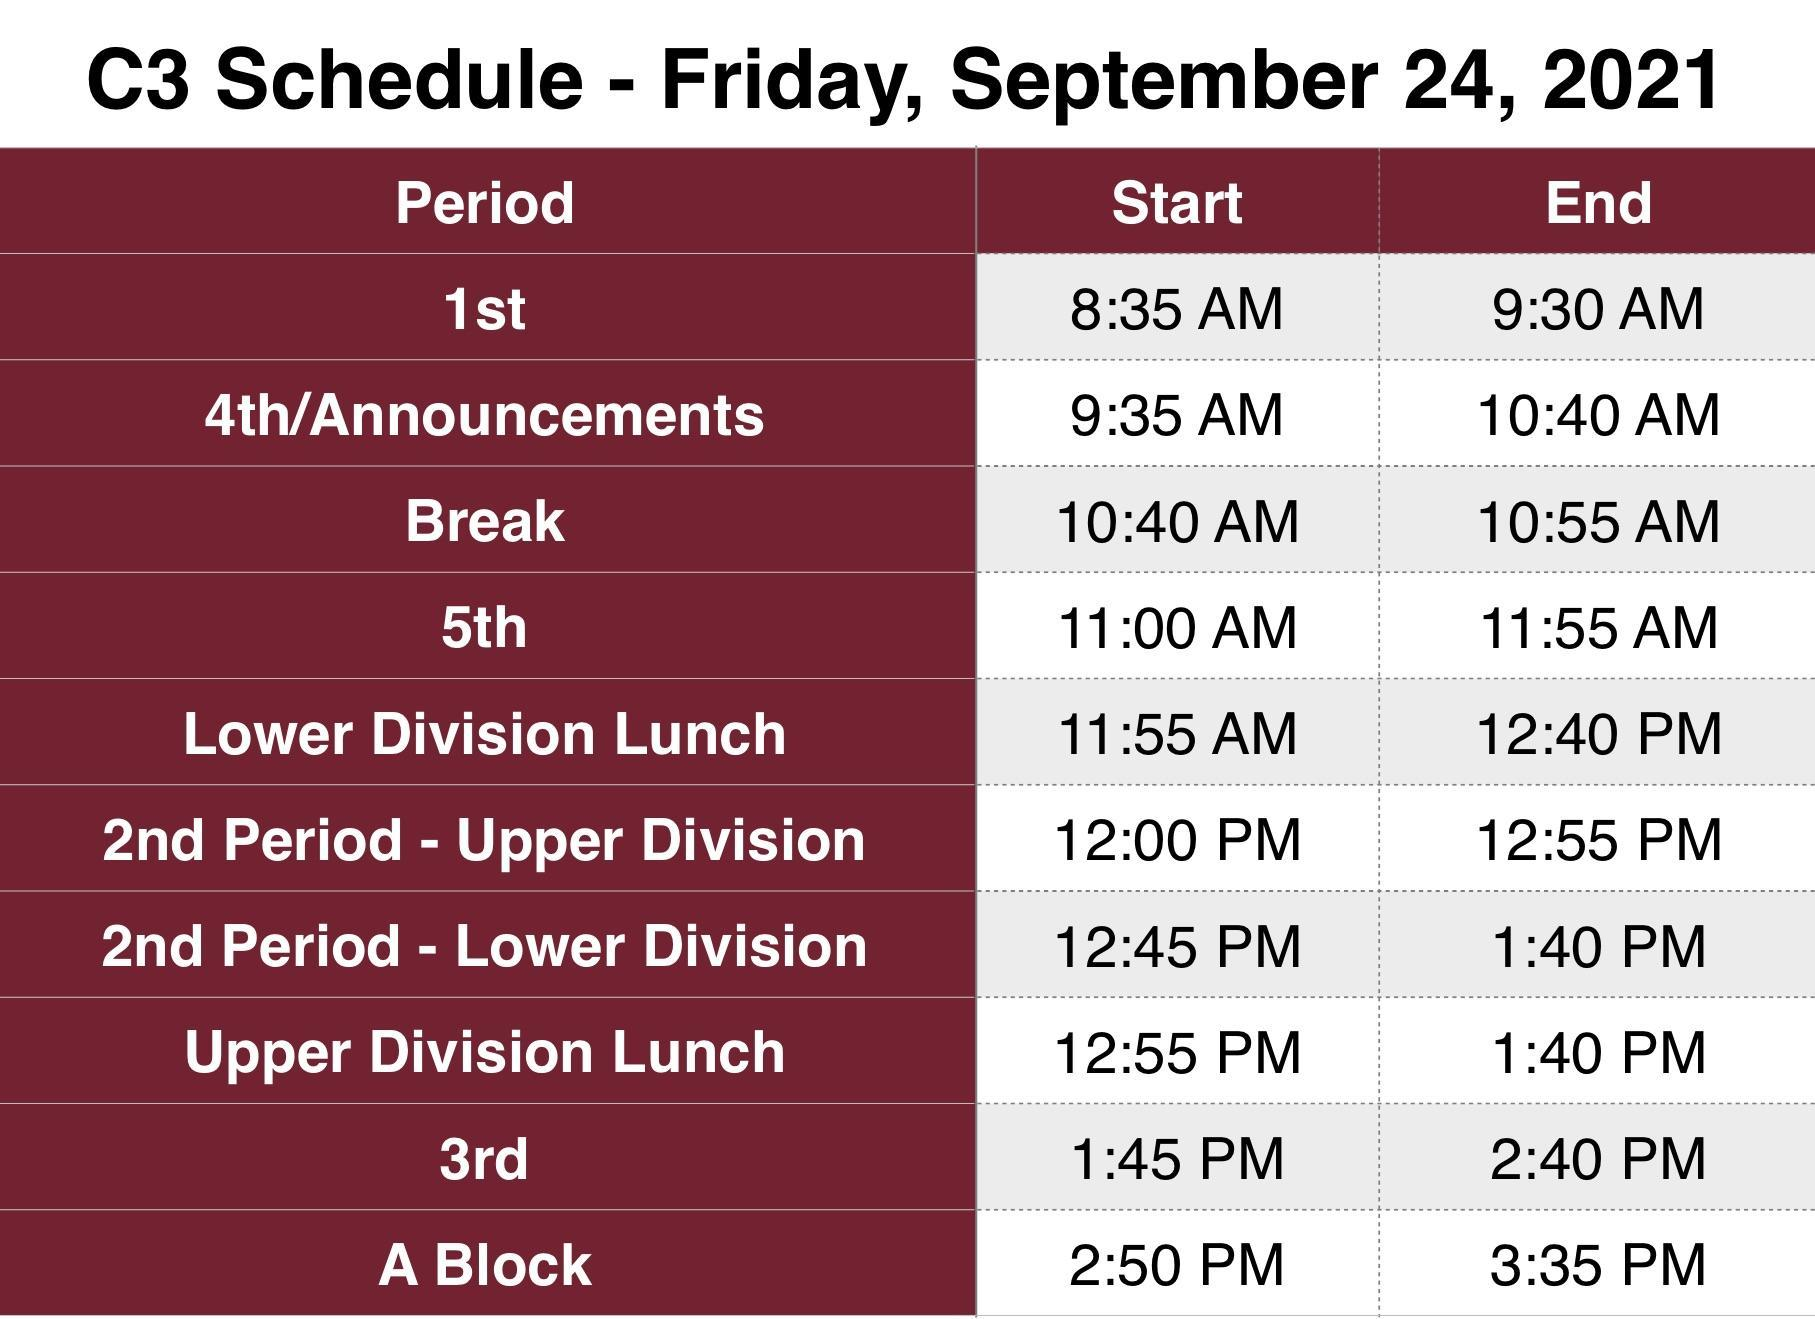 C3 Rotation Schedule for Friday September 24, 2021